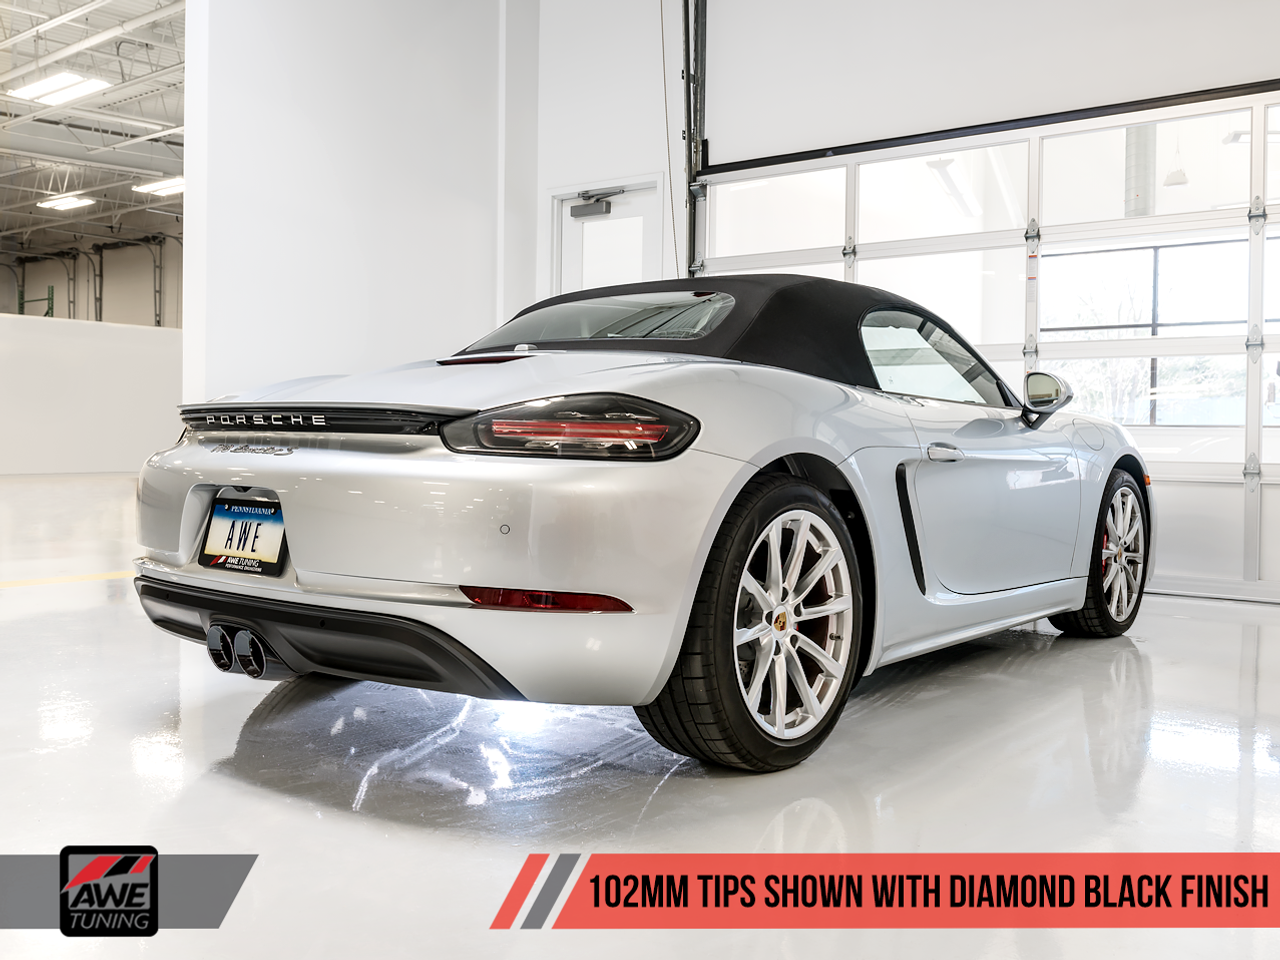 AWE Tuning Porsche 718 Boxster & Cayman Track Edition Exhaust - Diamond Black Tailpipes